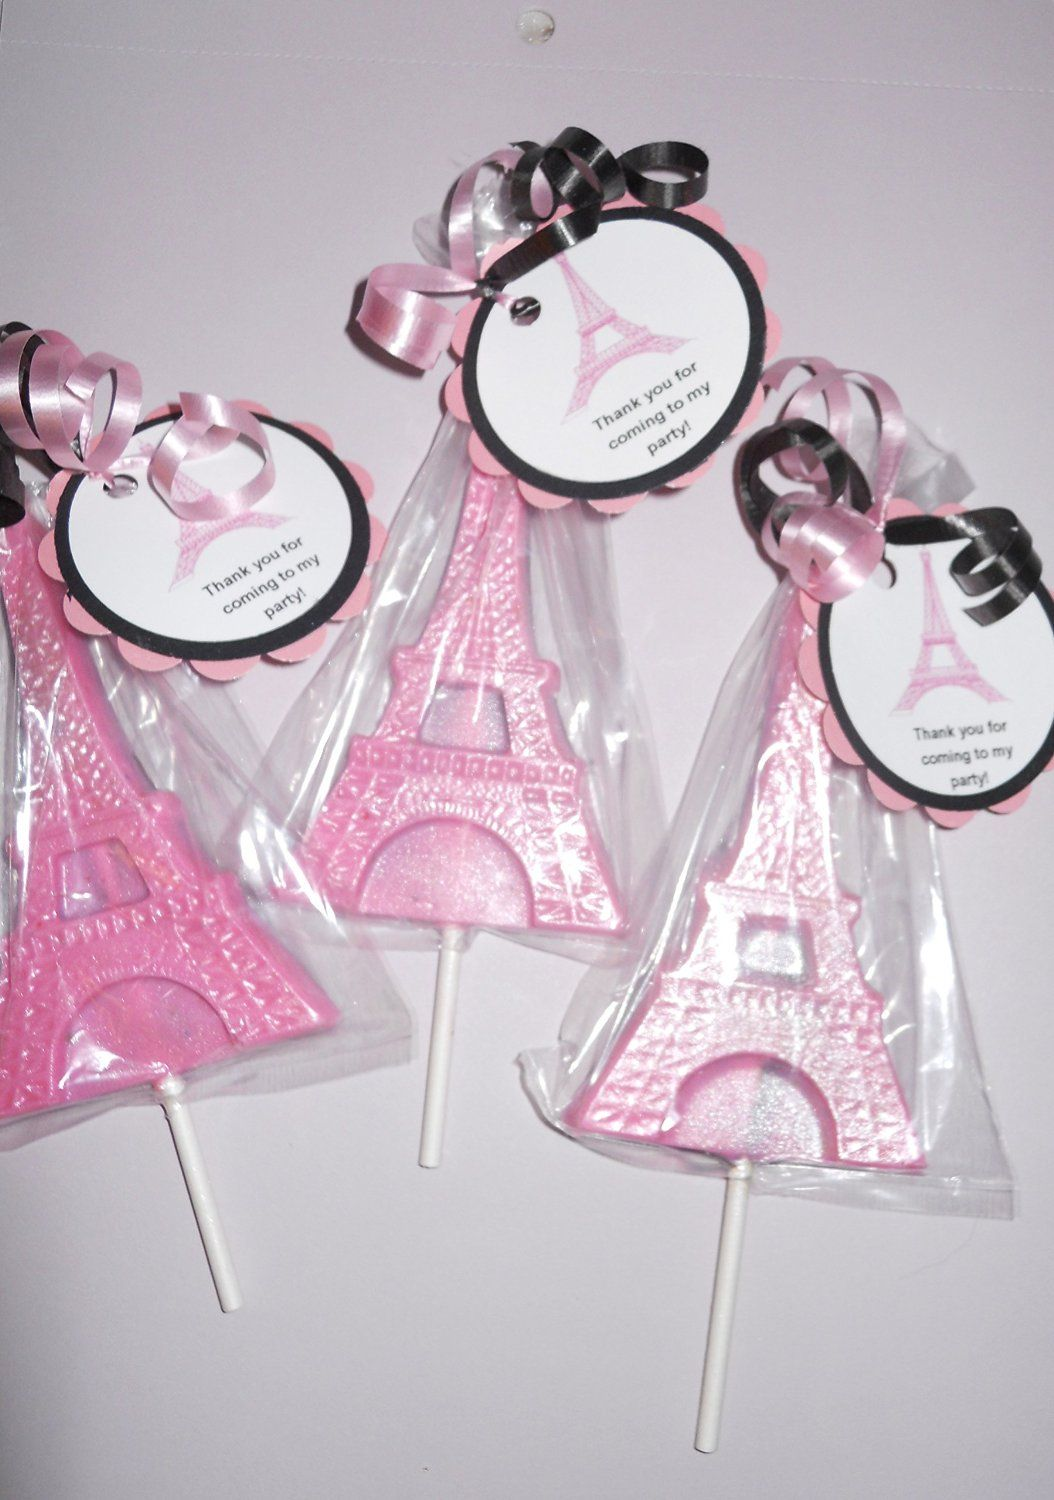 12 Eiffel Tower Paris, Ooh La La Gourmet Chocolate Lollipops with ...